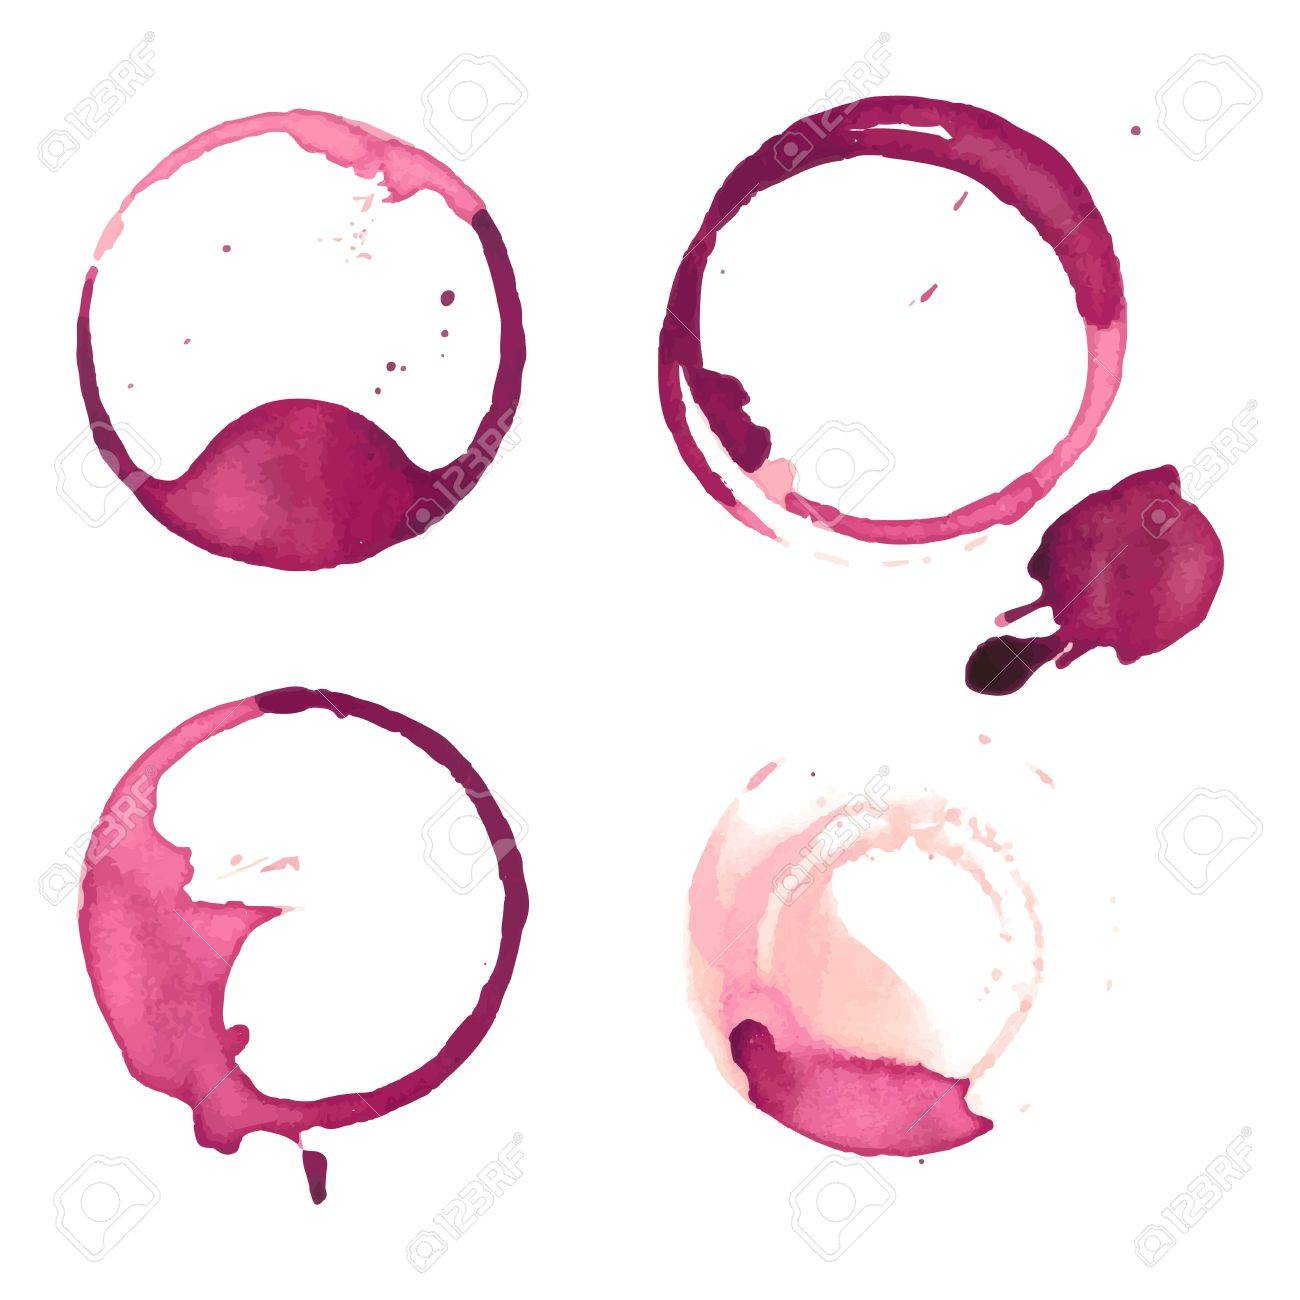 Wine staiin spots splashes cup vector isolated on white background. Wine spots splash vector. - 66595700